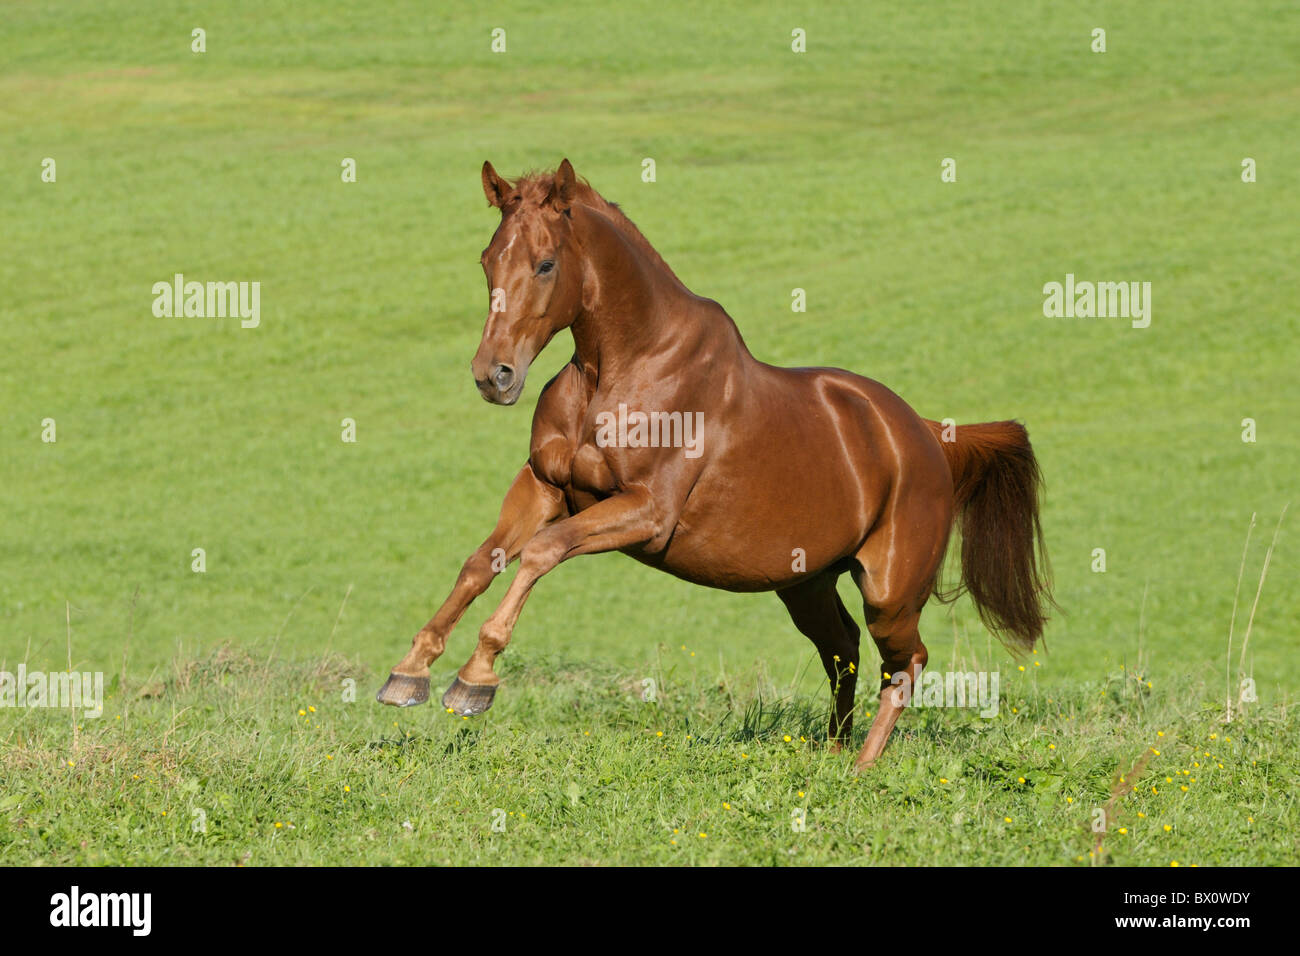 Hanoverian breed horse galloping in the field Stock Photo